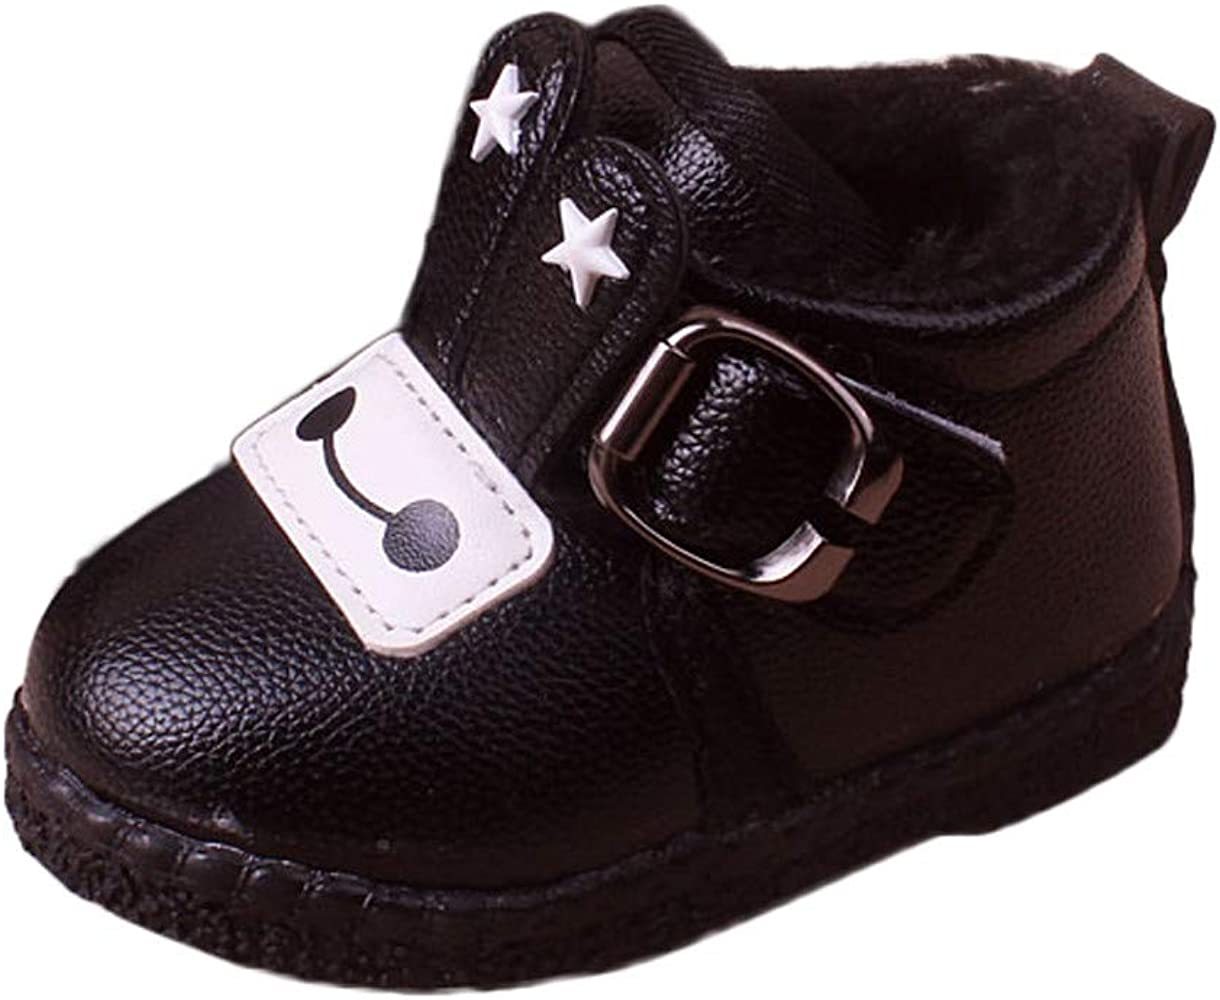 Lurryly Bowling Shoes Walking Boot